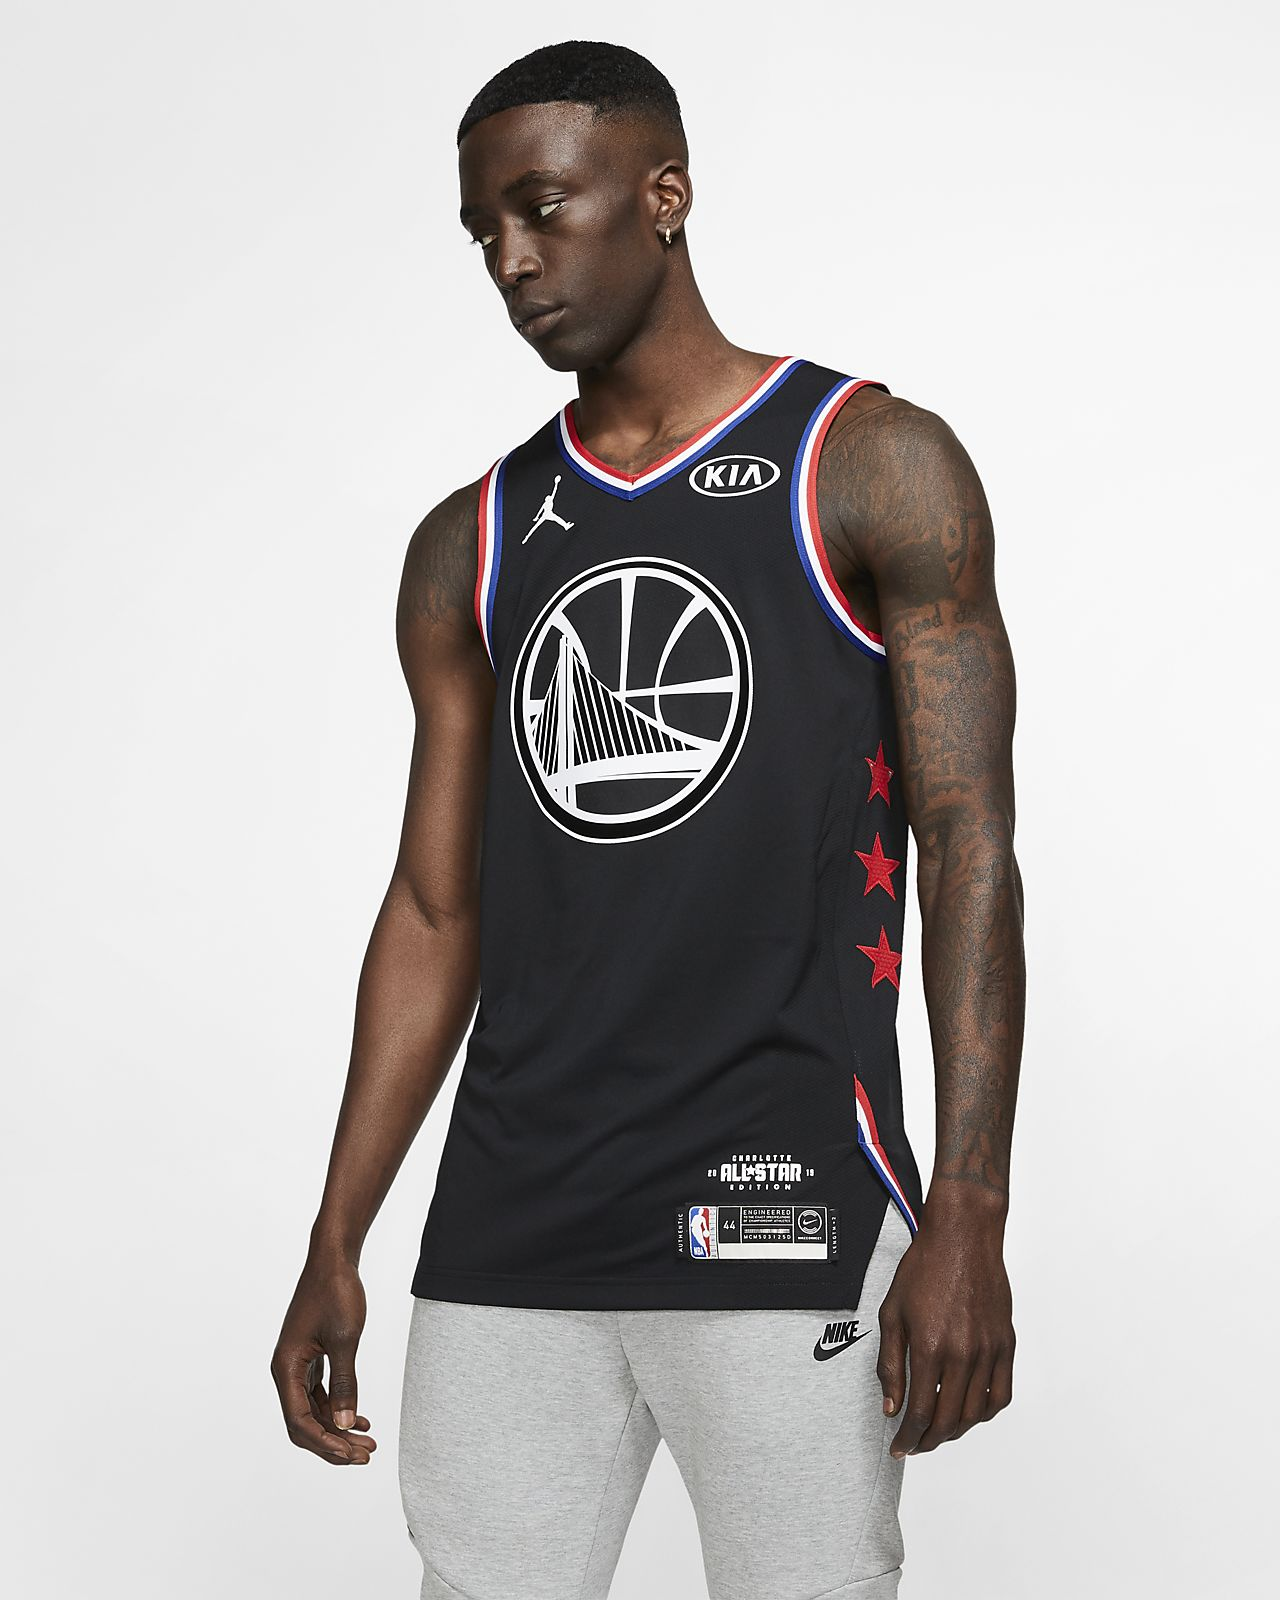 55ef393731b349 ... Stephen Curry All-Star Edition Authentic Men s Jordan NBA Connected  Jersey